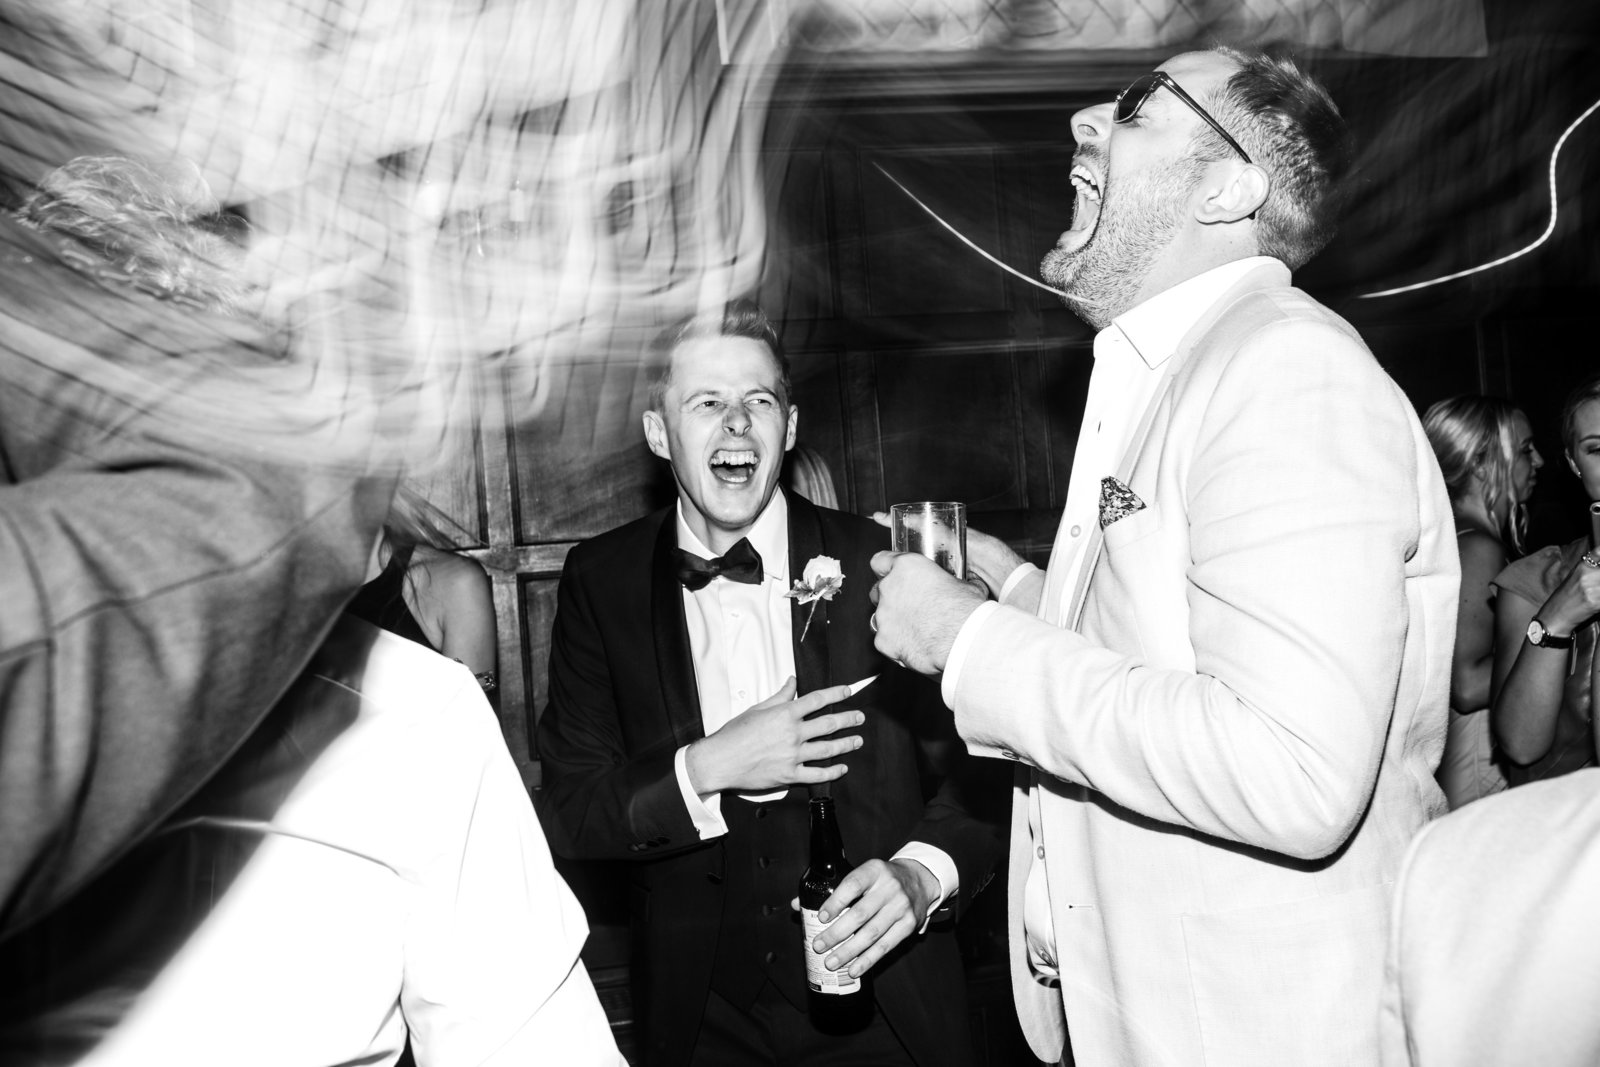 Evening suited wedding guests laugh on the dance floor at Hengrave Hall, Suffolk.